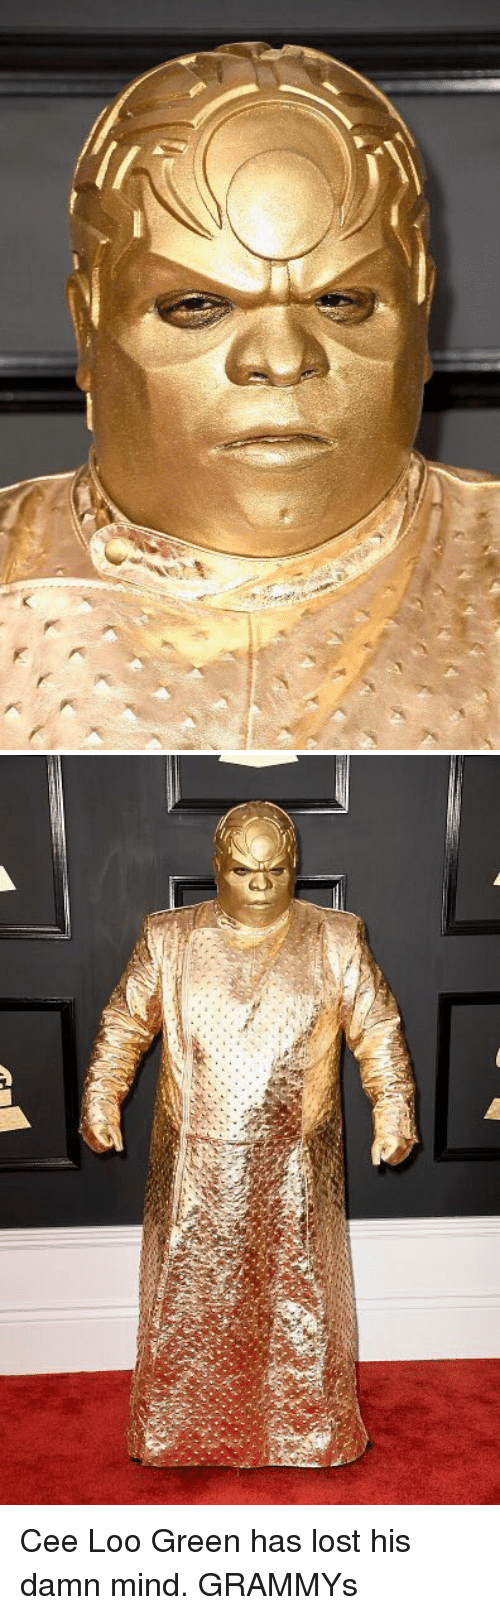 Blackpeopletwitter and Looed: C Cee Loo Green has lost his damn mind. GRAMMYs